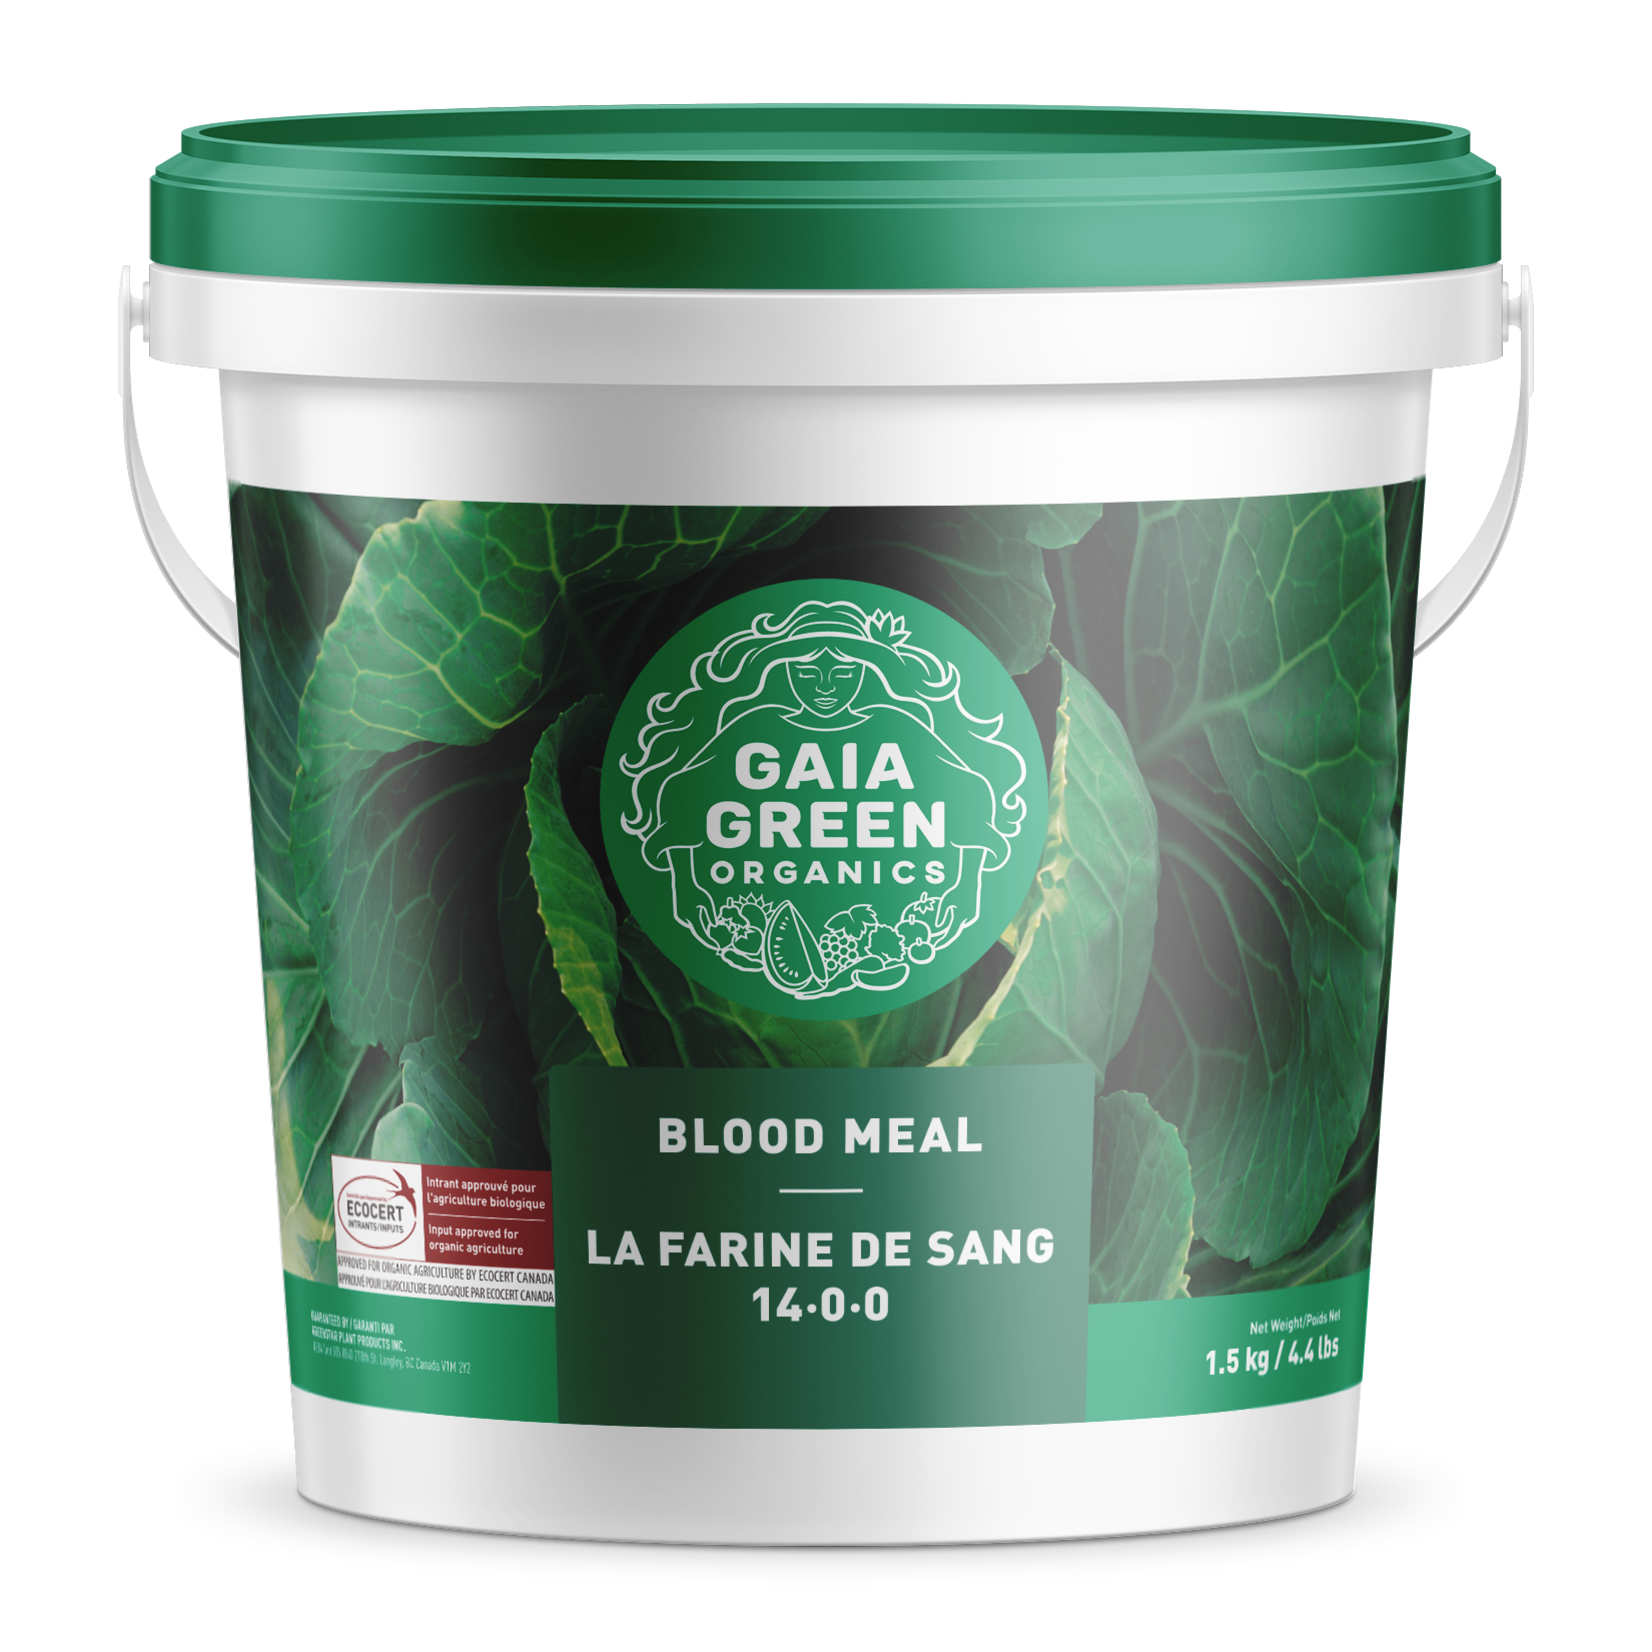 gaia green Gaia Green BLOOD MEAL 1.5KG